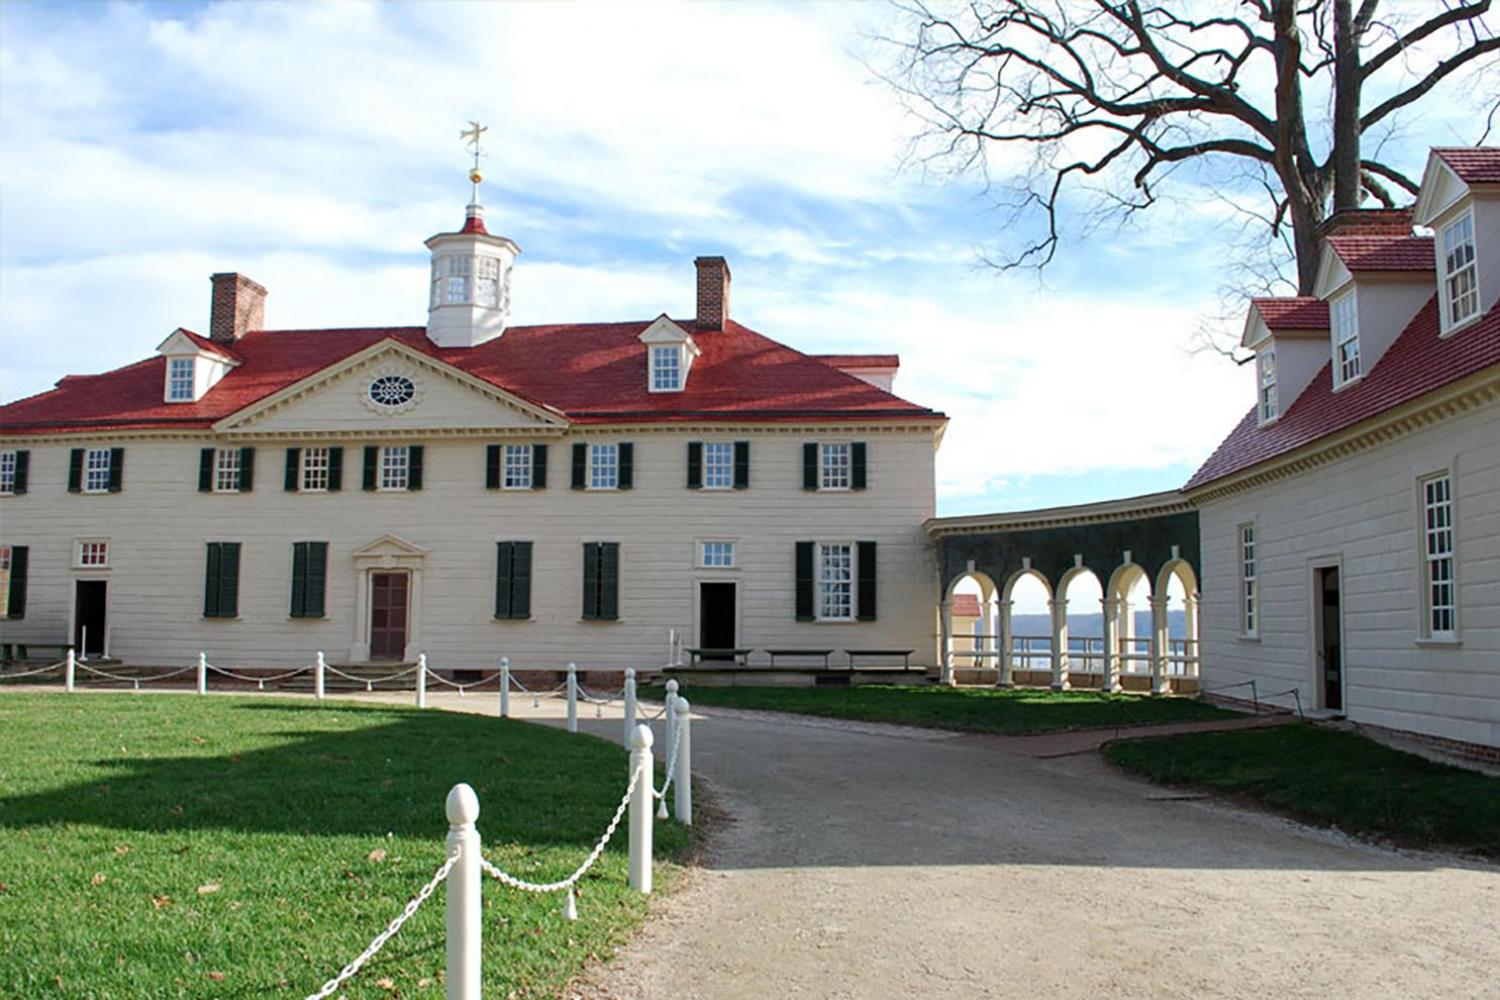 Explore the beautiful estate, farm, and yard of George Washington